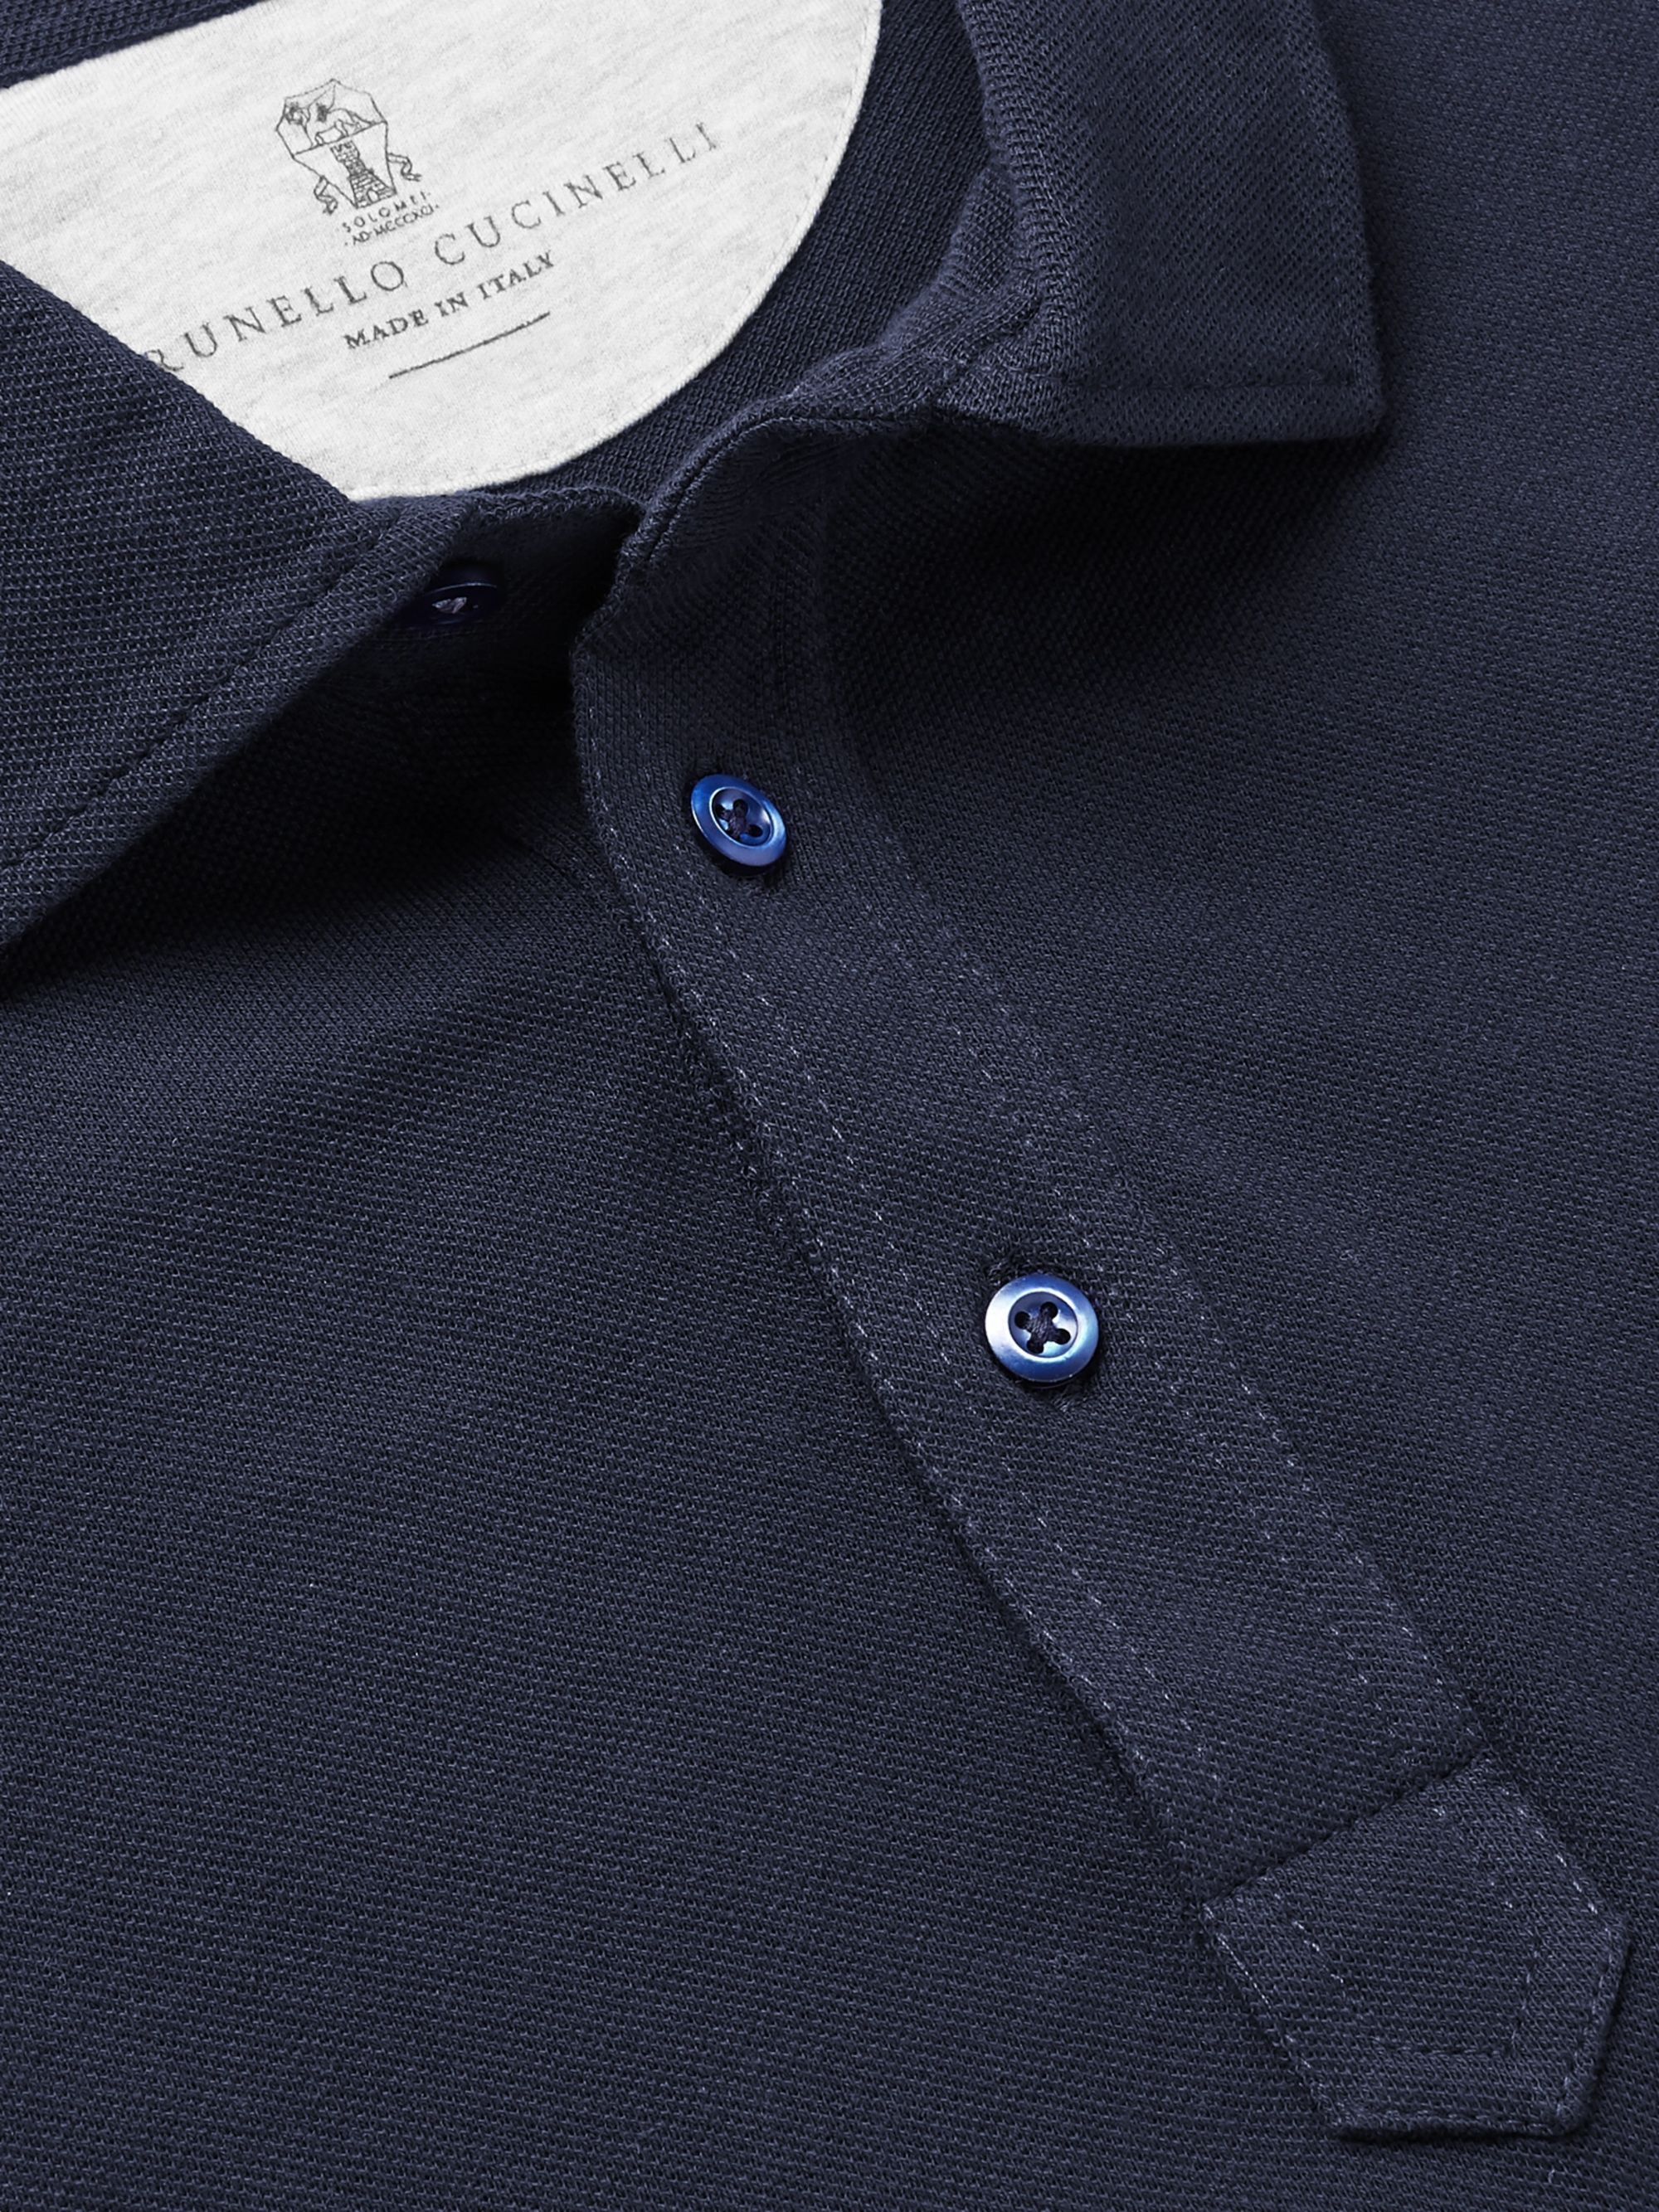 Brunello Cucinelli Slim-Fit Layered Mélange Cotton-Piqué Polo Shirt